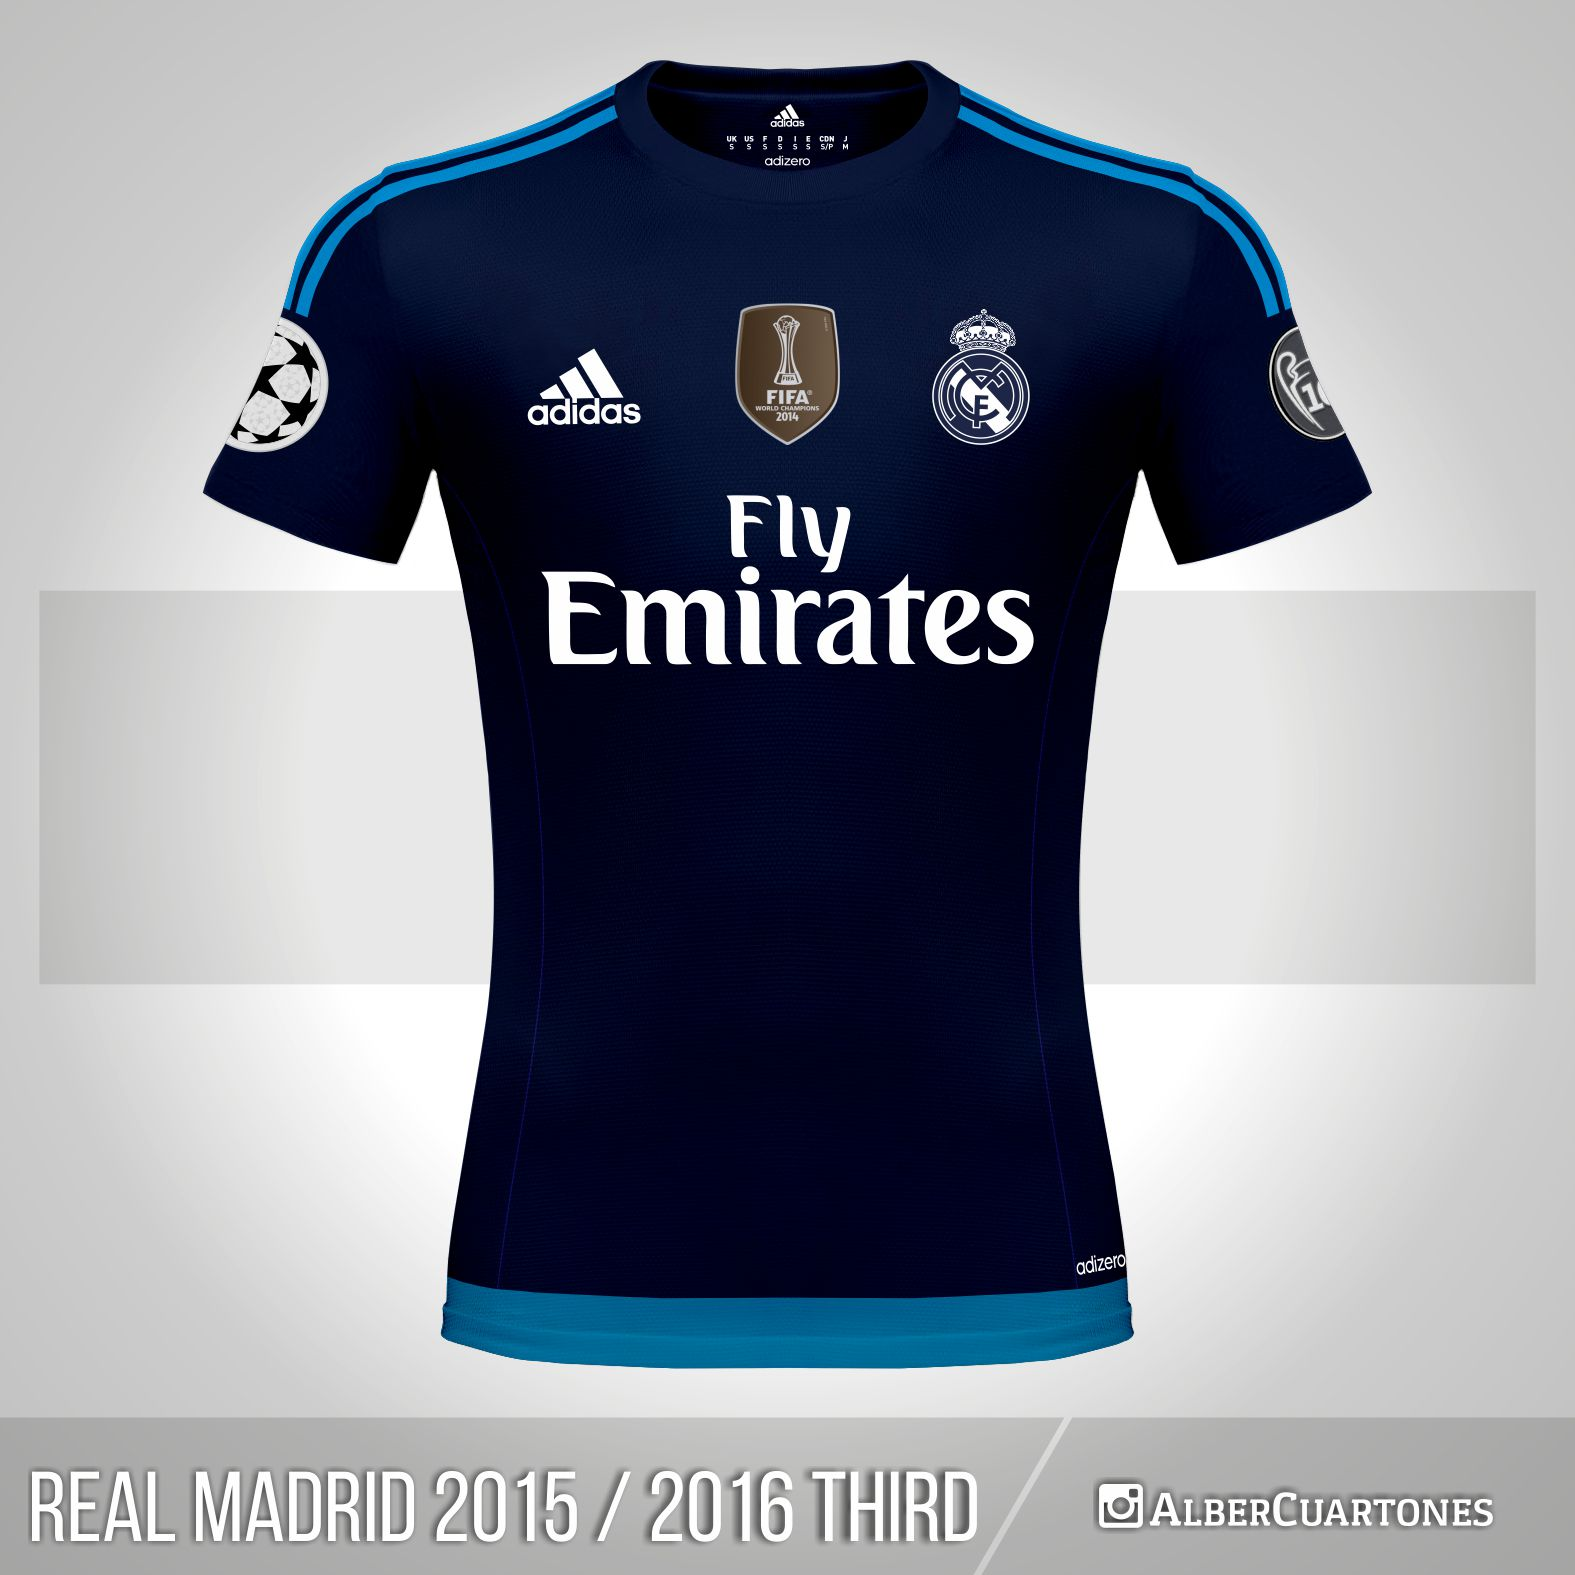 sports shoes 135a3 2ebf2 Real Madrid 2015 / 2016 Third Shirt (according to leaks)